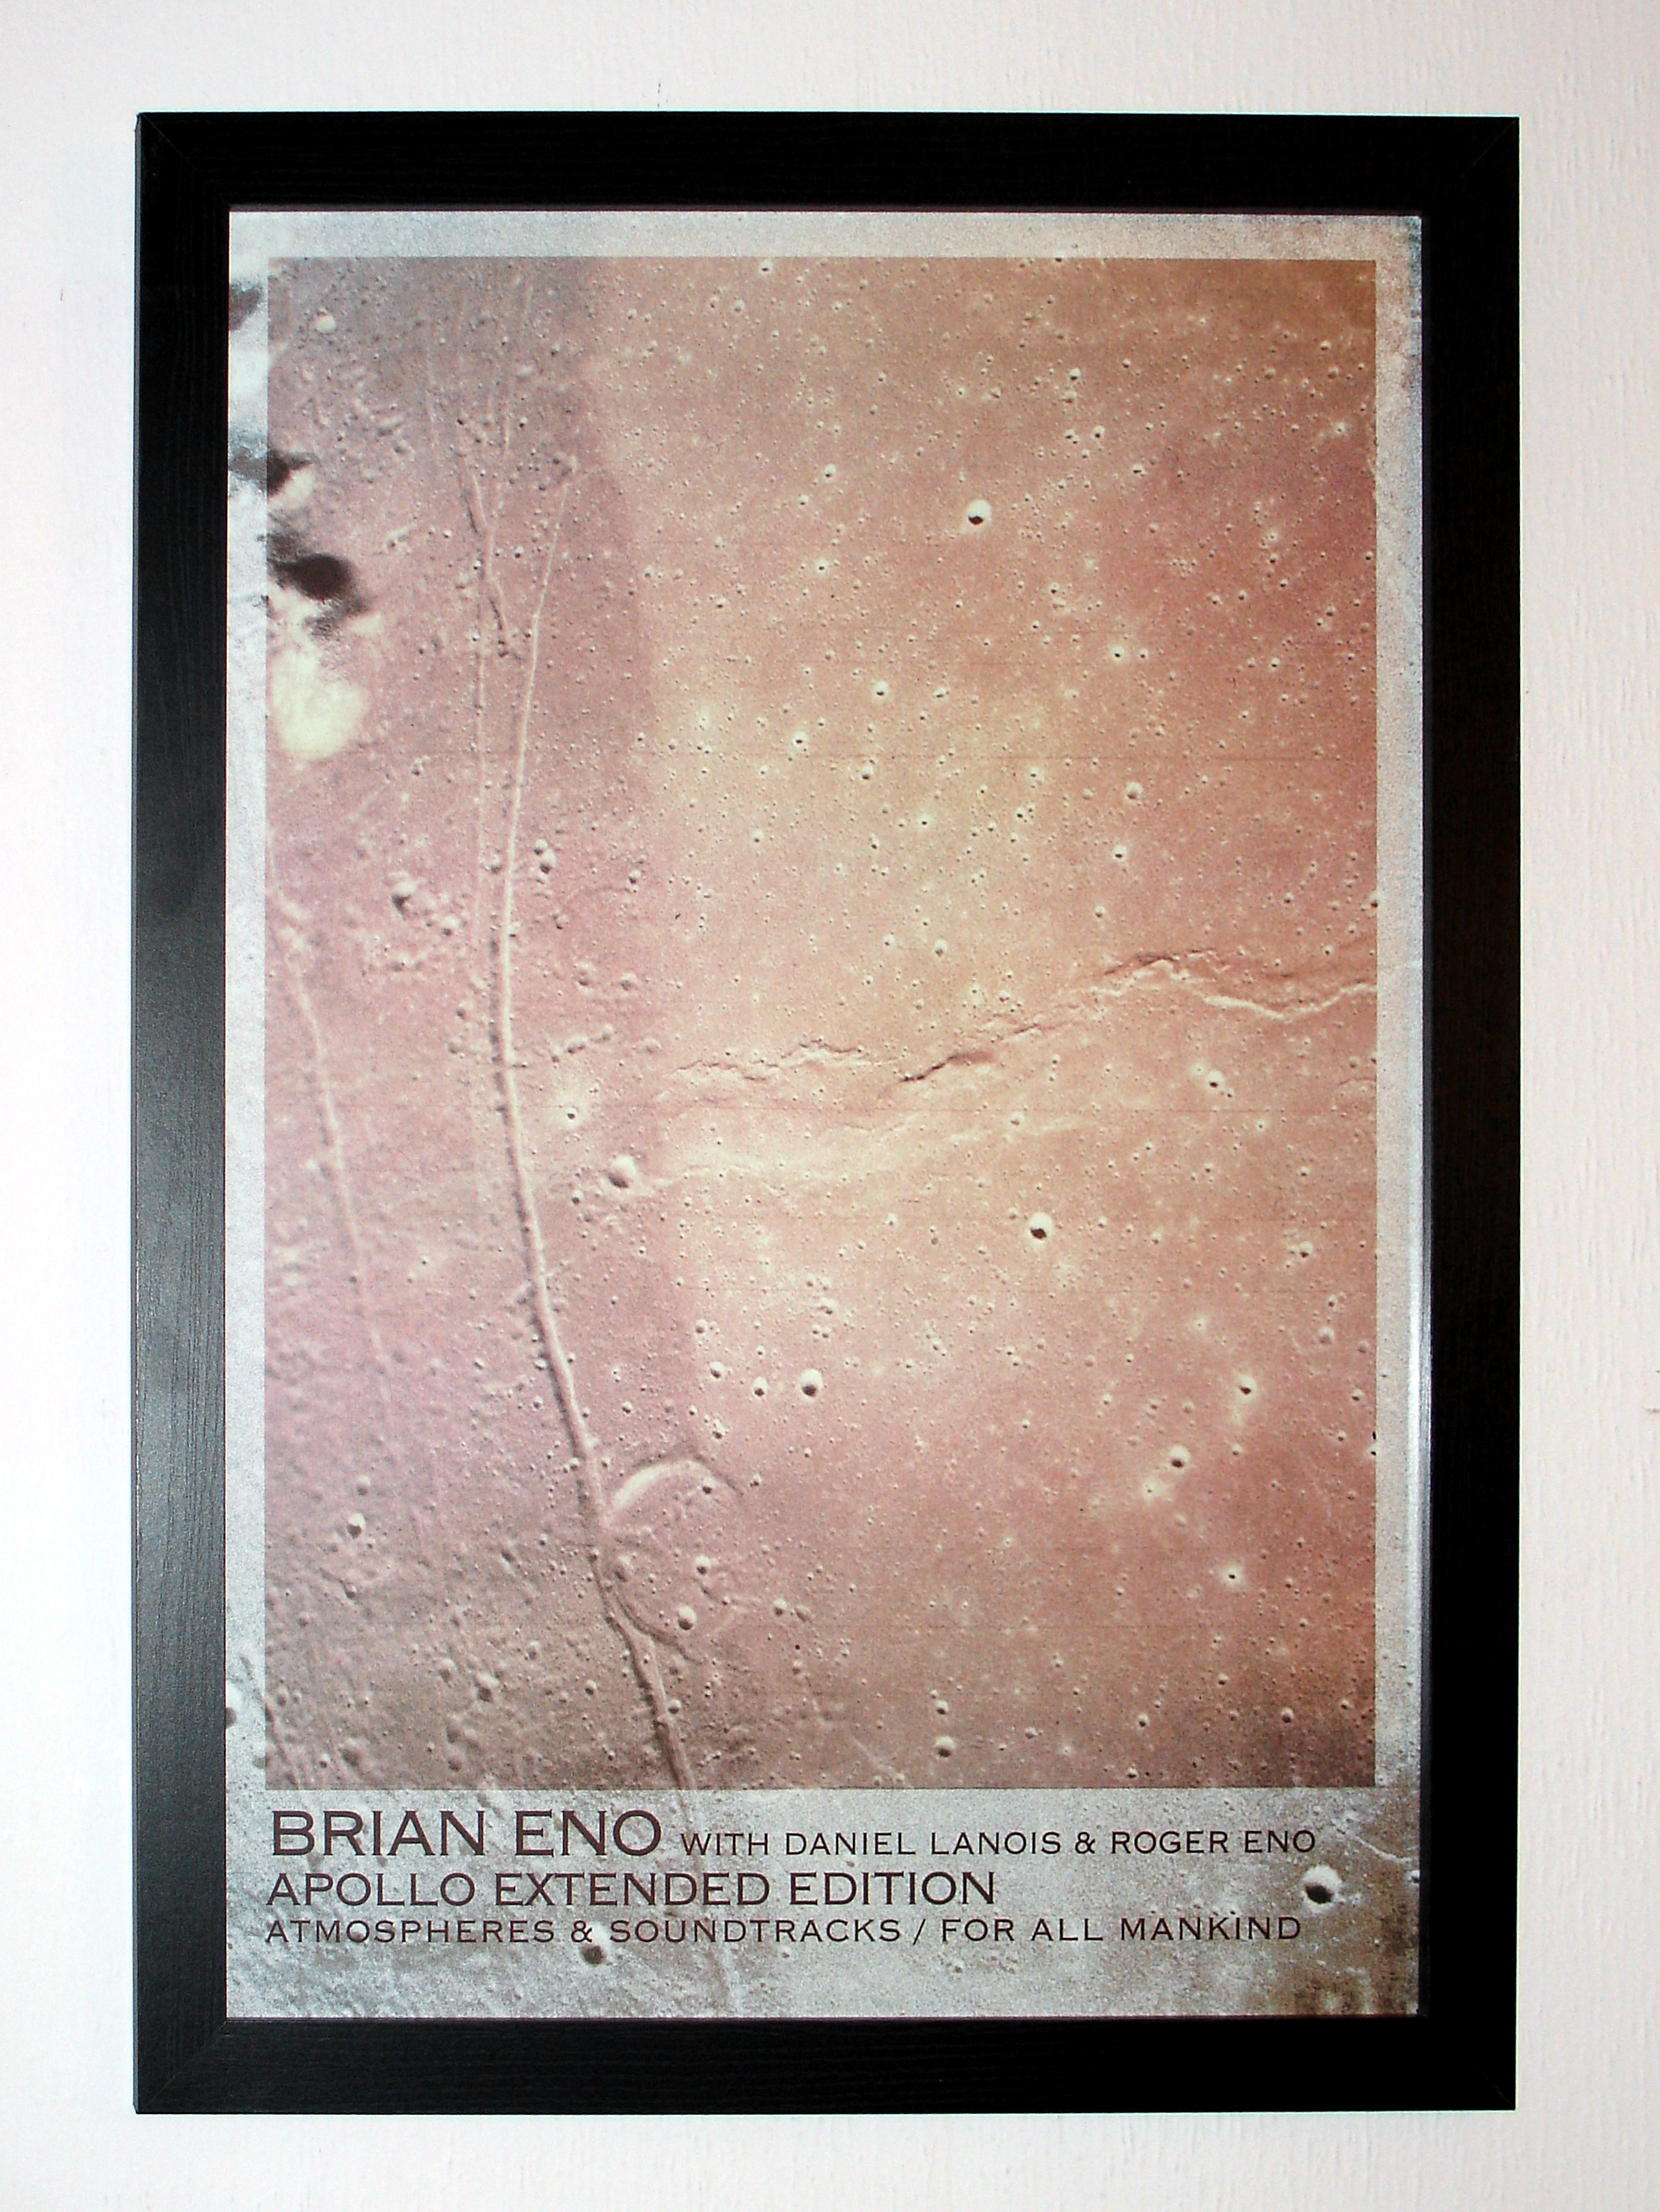 Sony Camera Version of Brian Eno - Apollo Atmospheres & Soundtracks 2019 Extended Edition A2 Limited Edtiion Lithograph Art Print Framed